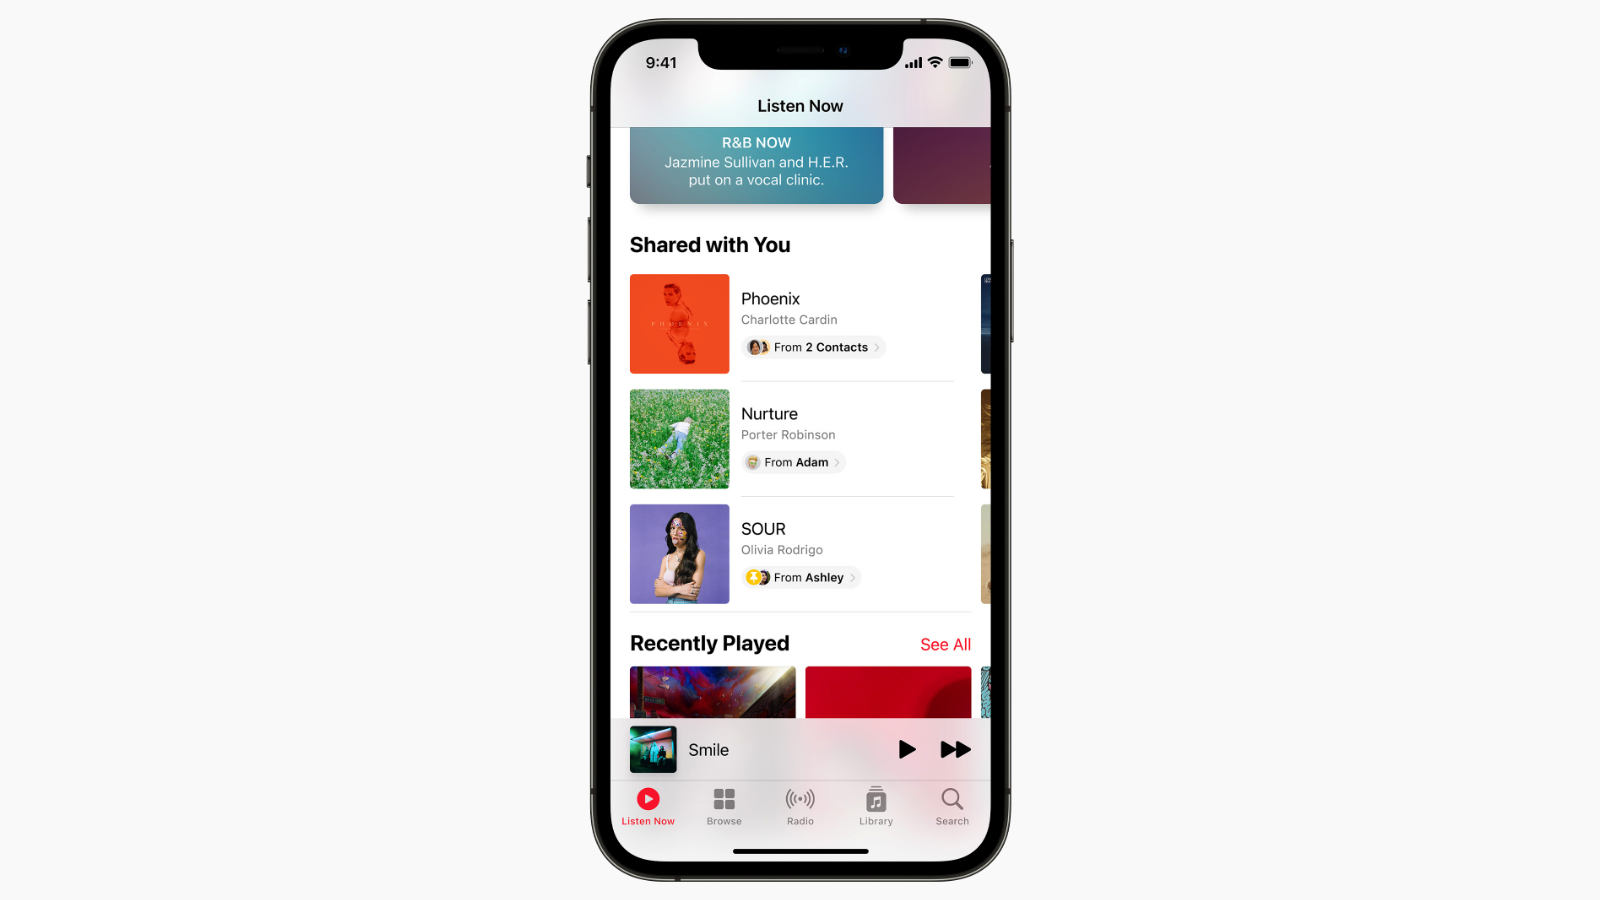 ios15 music shared with you